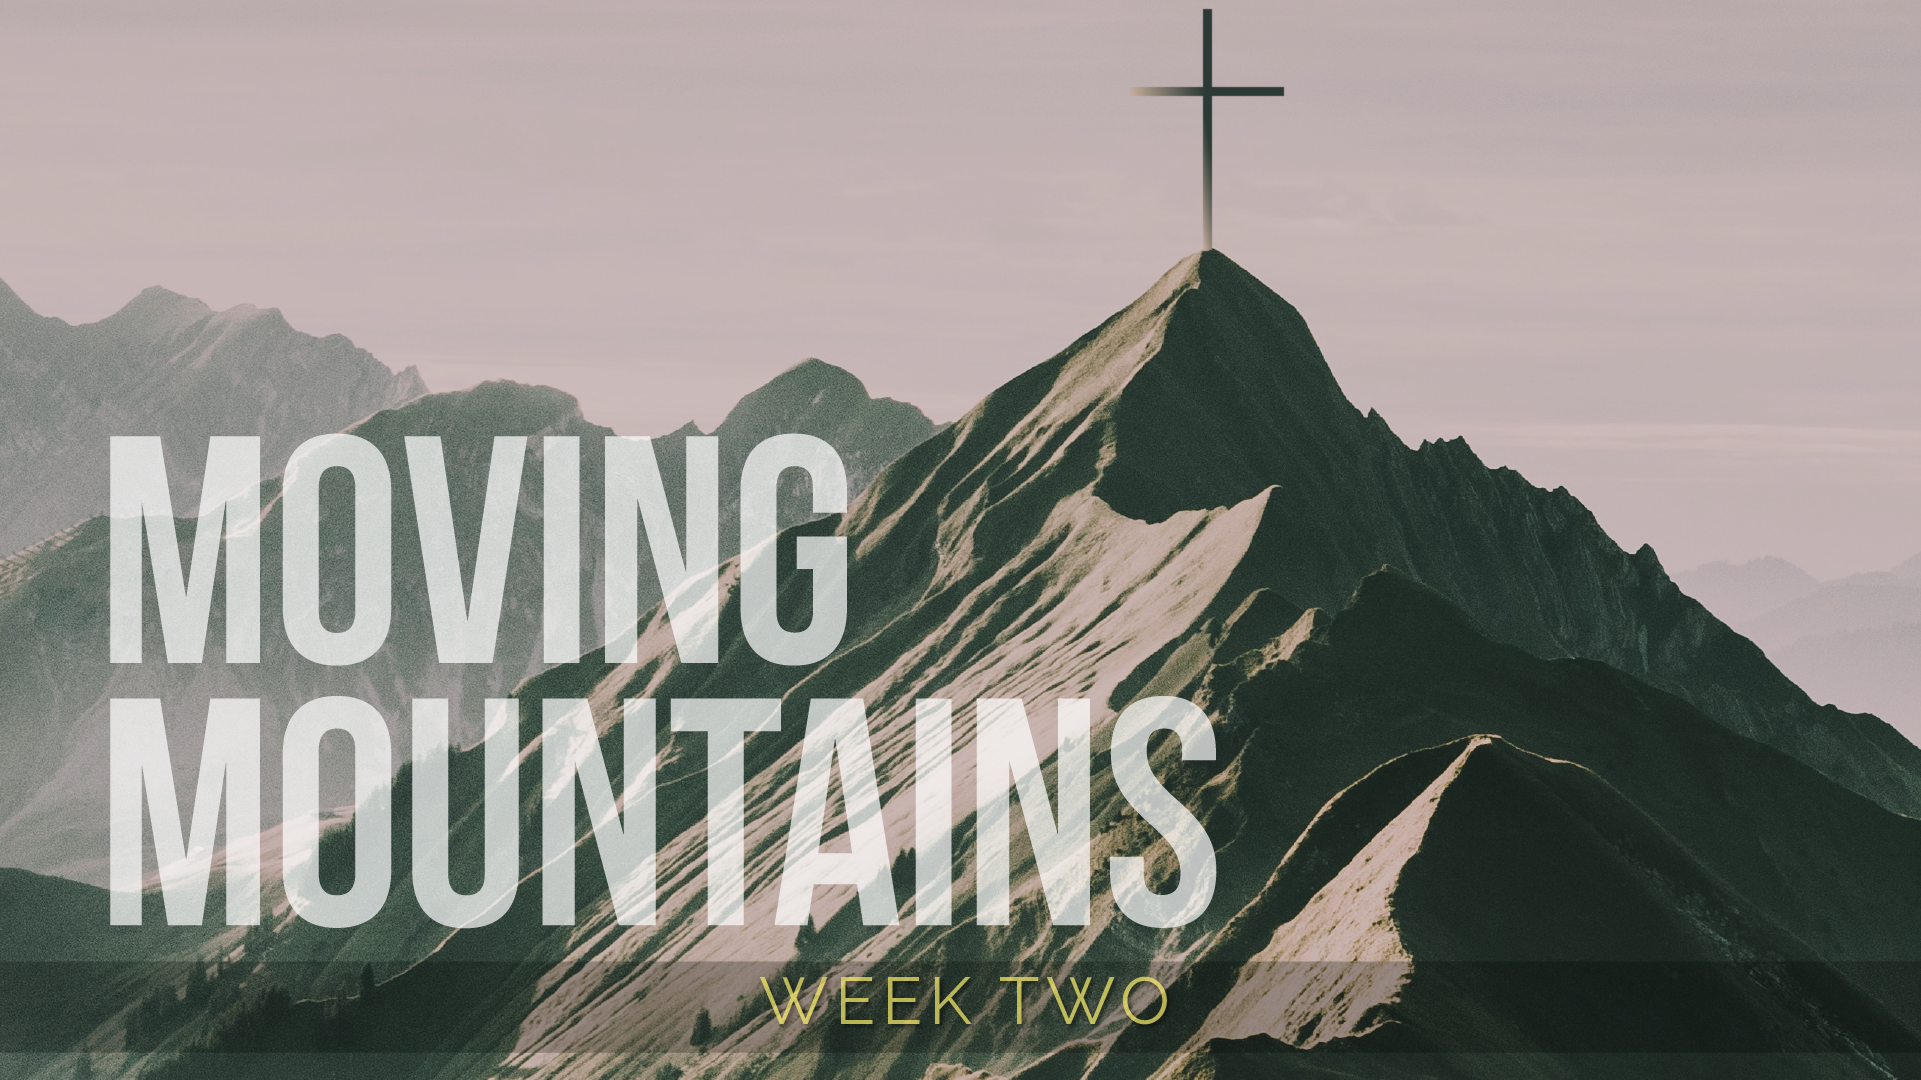 Moving Mountains - Week Two